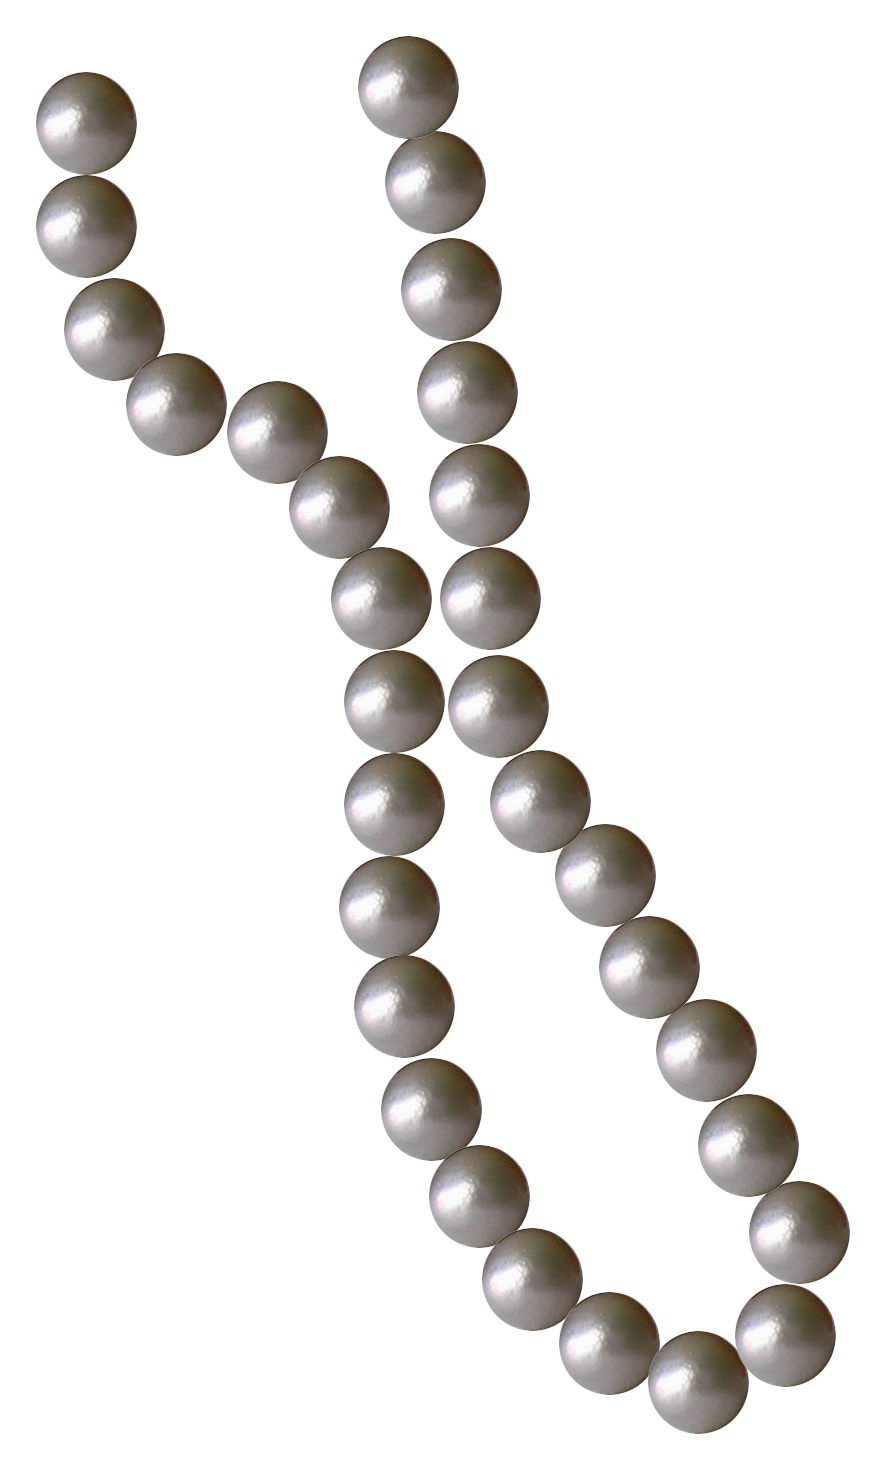 Clipart string of pearls.